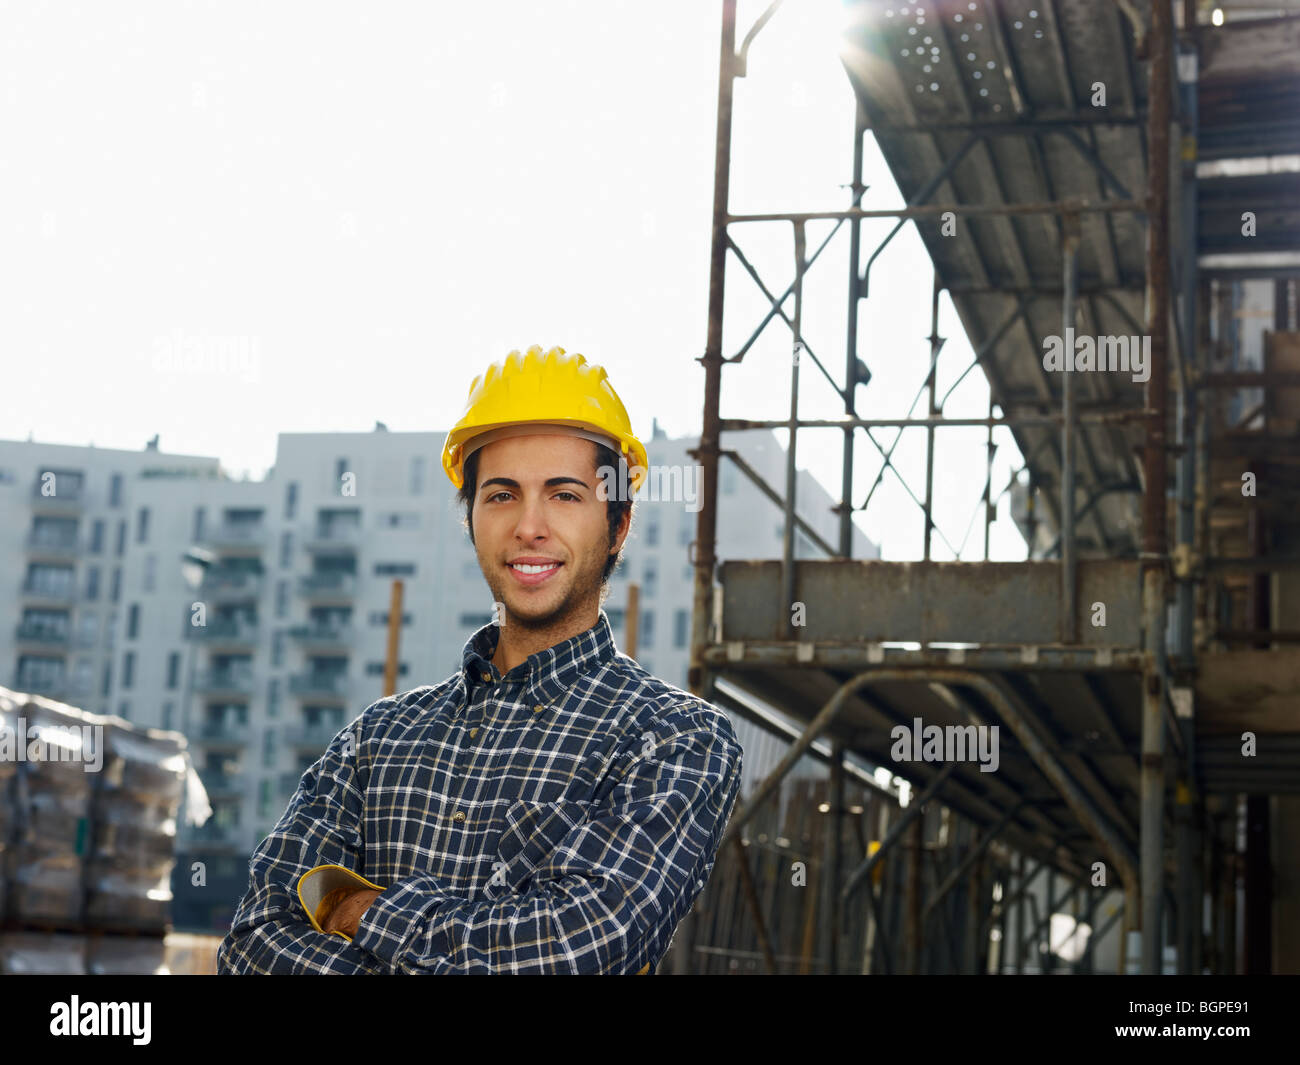 Construction Worker looking at camera Photo Stock